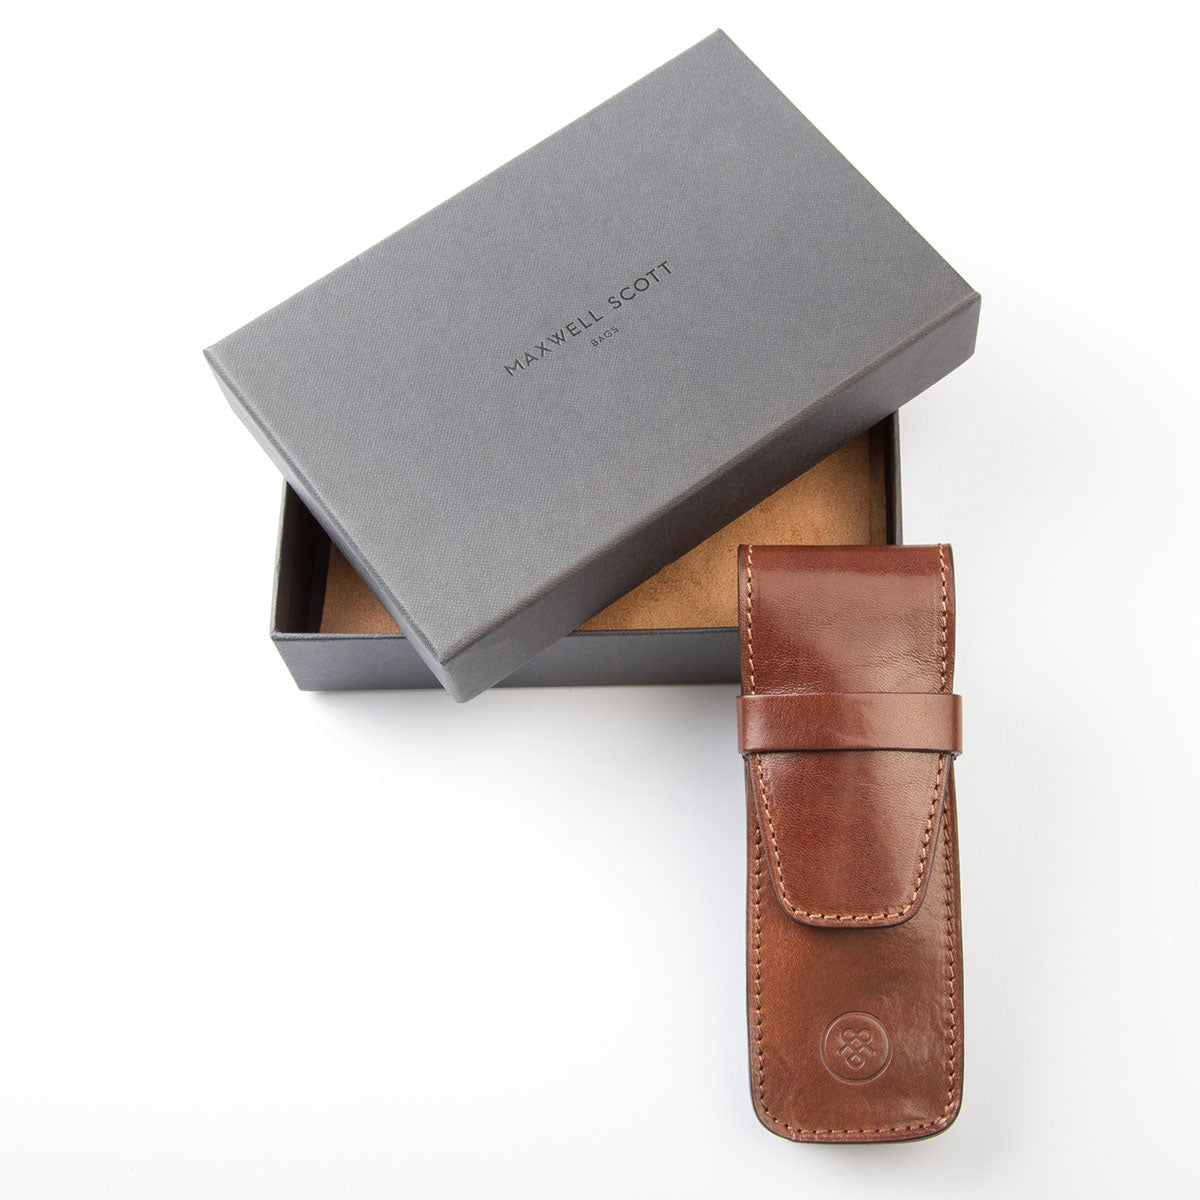 Image 6 of the 'Pienza' Chestnut Veg-Tanned Leather Pen Case